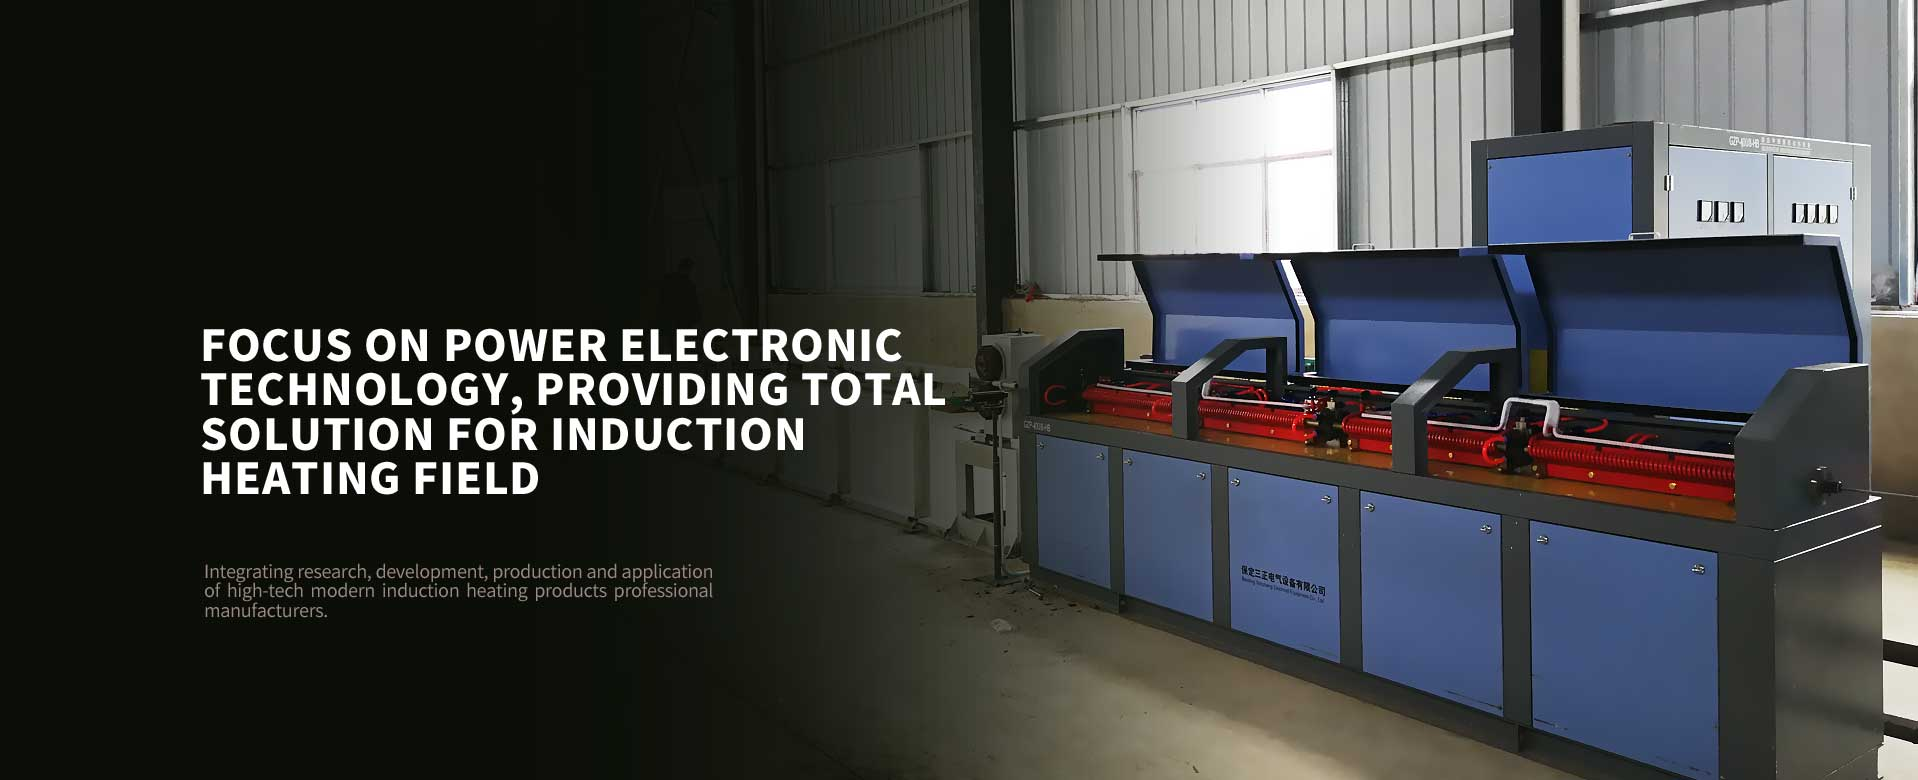 Induction heating technology